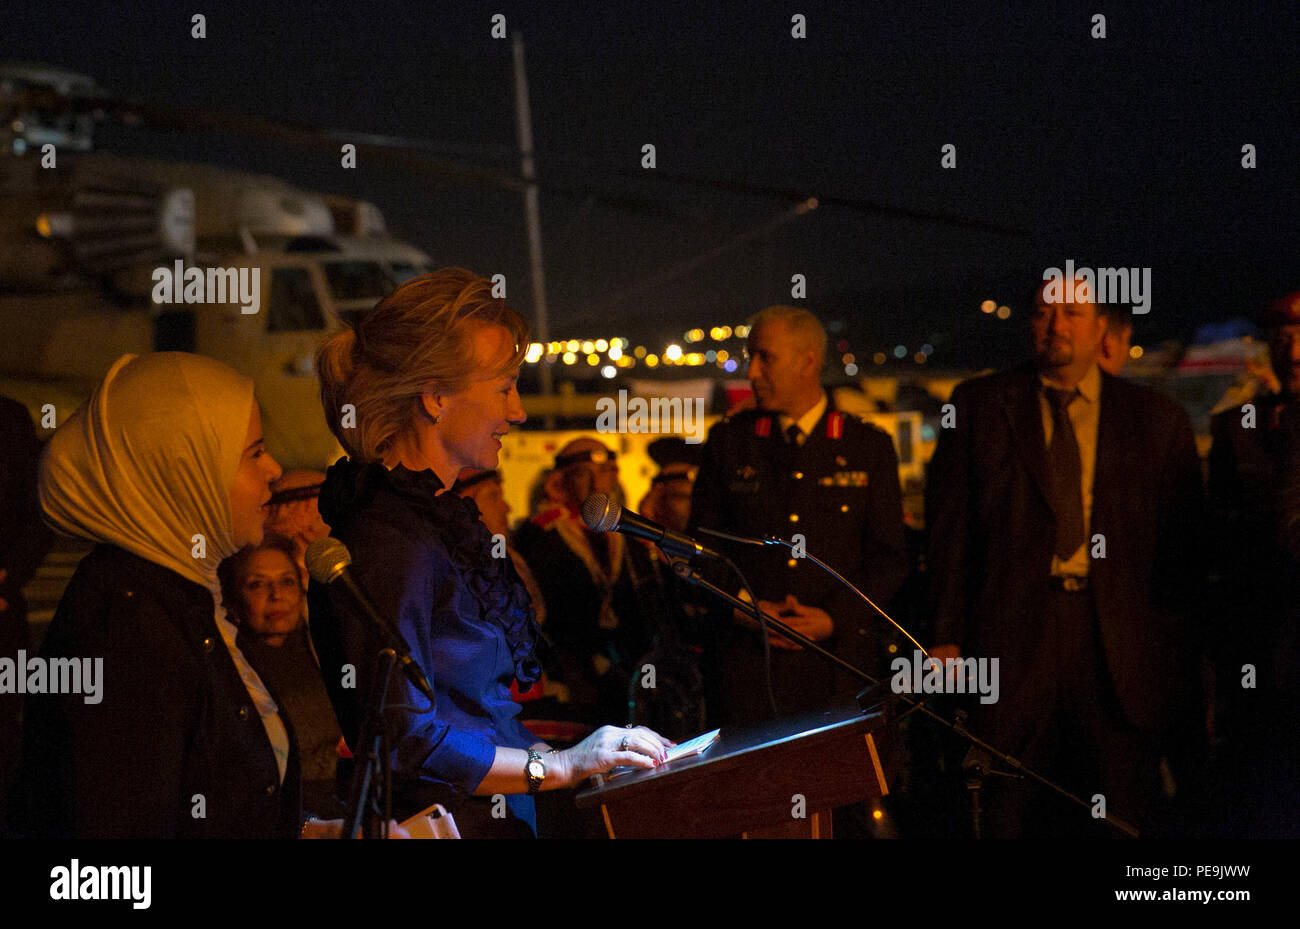 U.S. Ambassador Alice Wells, the U.S. ambassador to Jordan, addresses guests during a reception aboard USS Arlington (LPD 24) in Aqaba, Jordan, Nov. 19, 2015. The reception was an opportunity for U.S. and ally commanders to expand relationships while the Kearsarge Amphibious Ready Group and 26th Marine Expeditionary Unit are deployed to the U.S. 5th Fleet area of responsibility. (U.S. Marine Corps photo by Sgt. Austin Long/ Released) - Stock Image